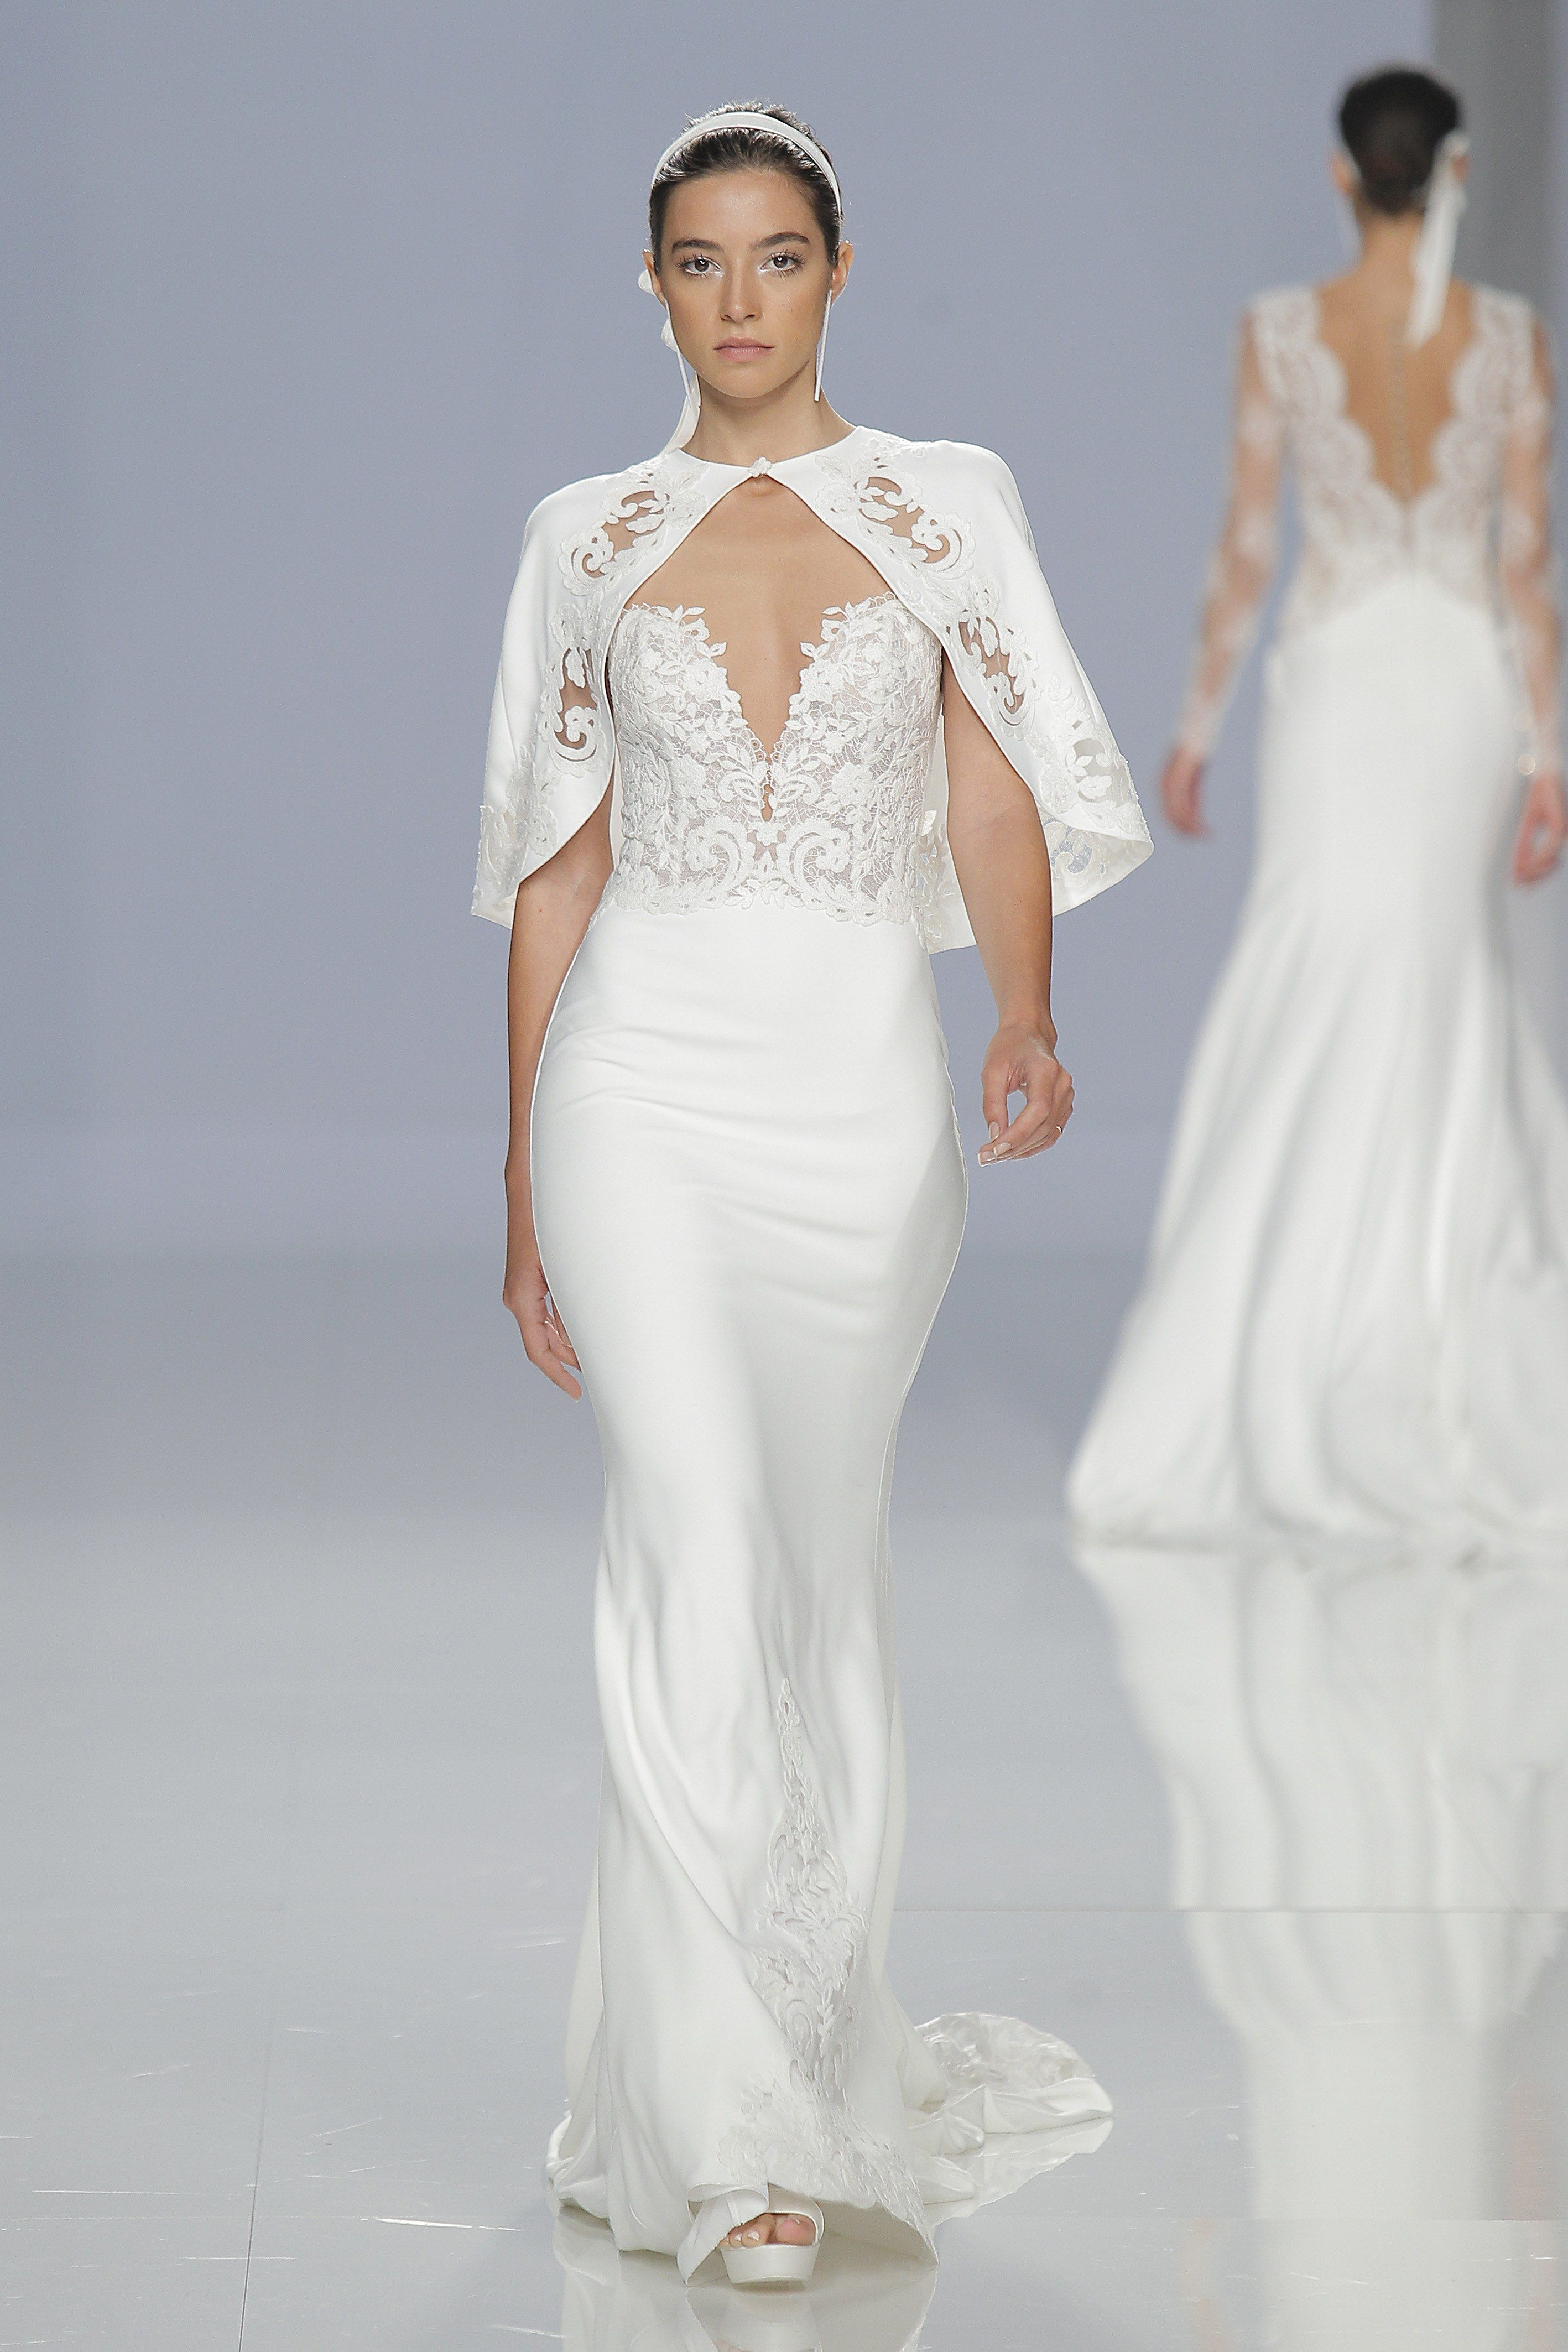 Try Different Fabric Combination For The Modern But Classic Bridal Look